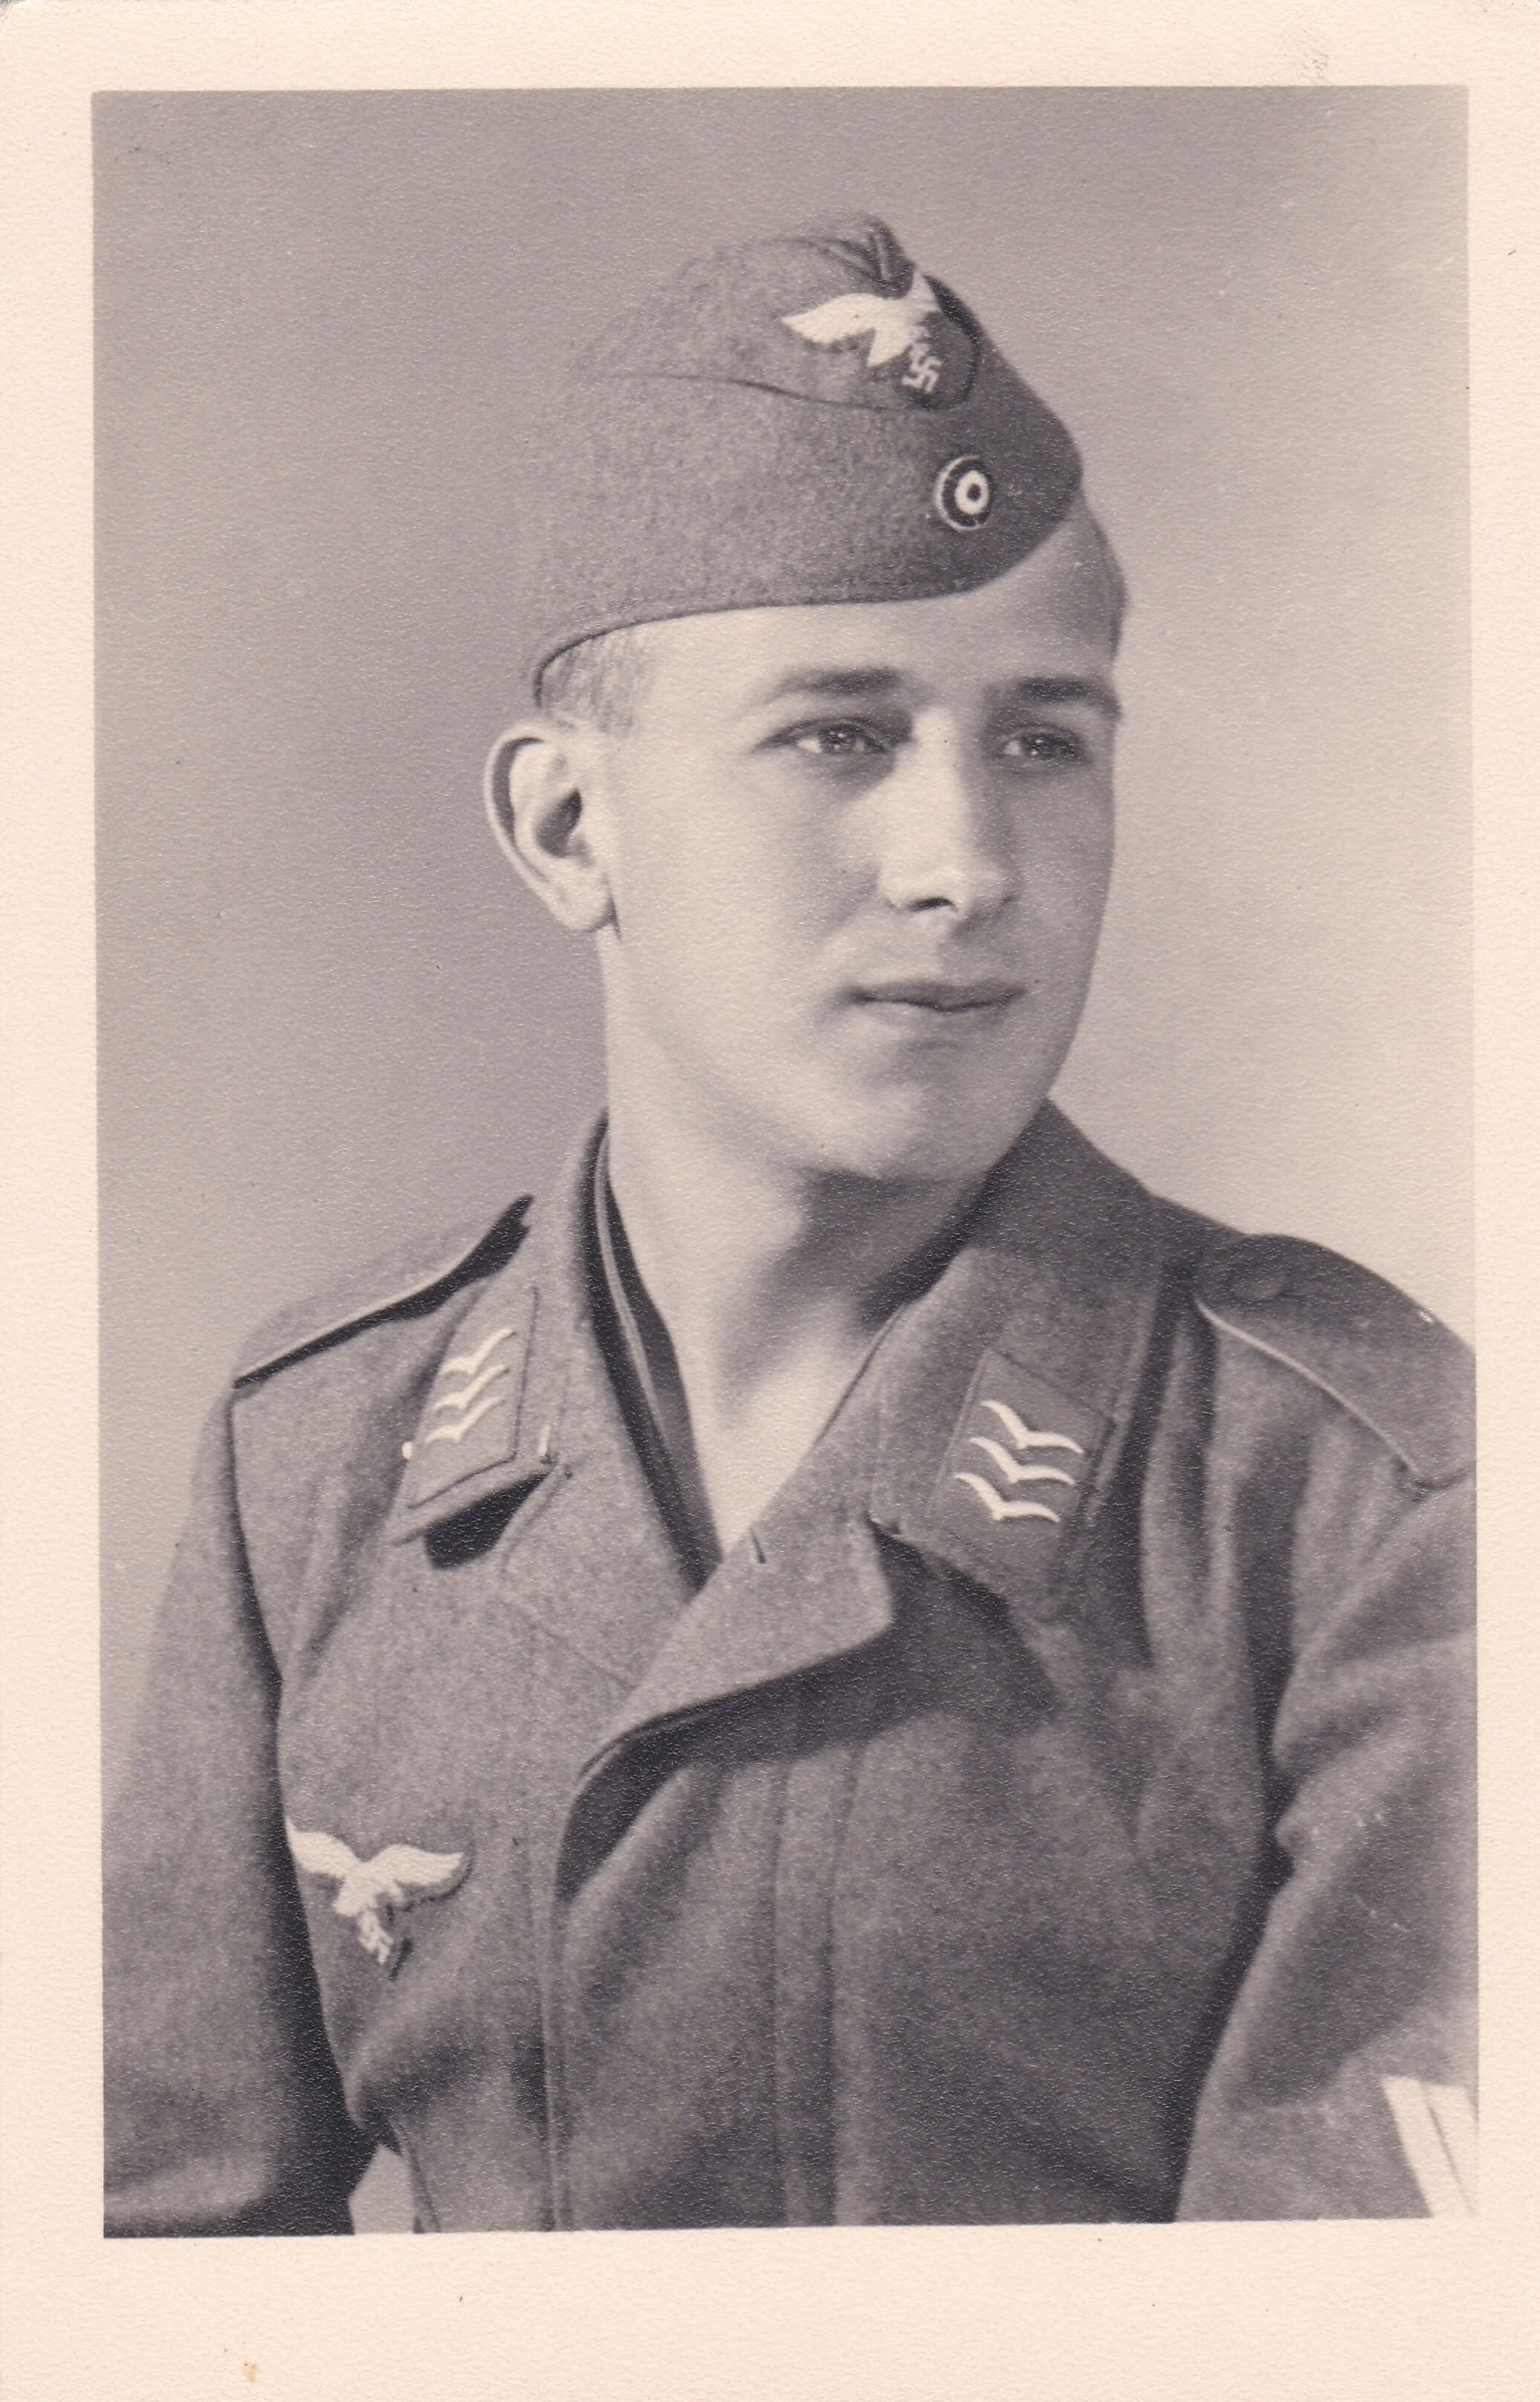 Foto Obergefreiter uniform soldaat Luftwaffe Wo2